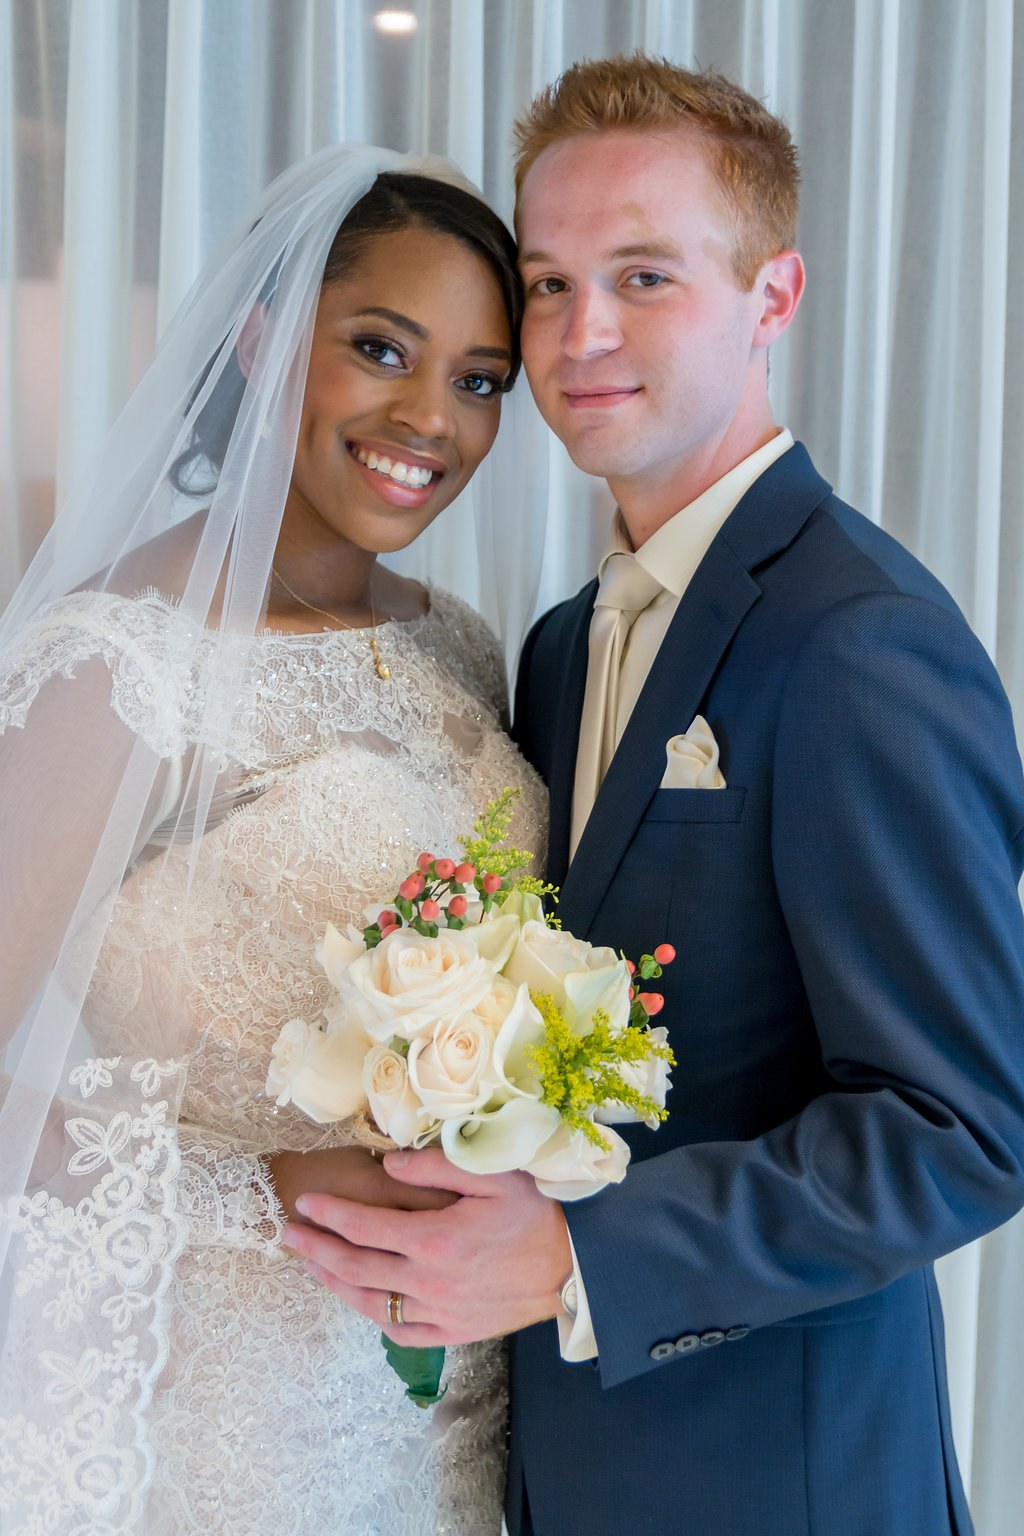 A bride and her husband on their wedding day